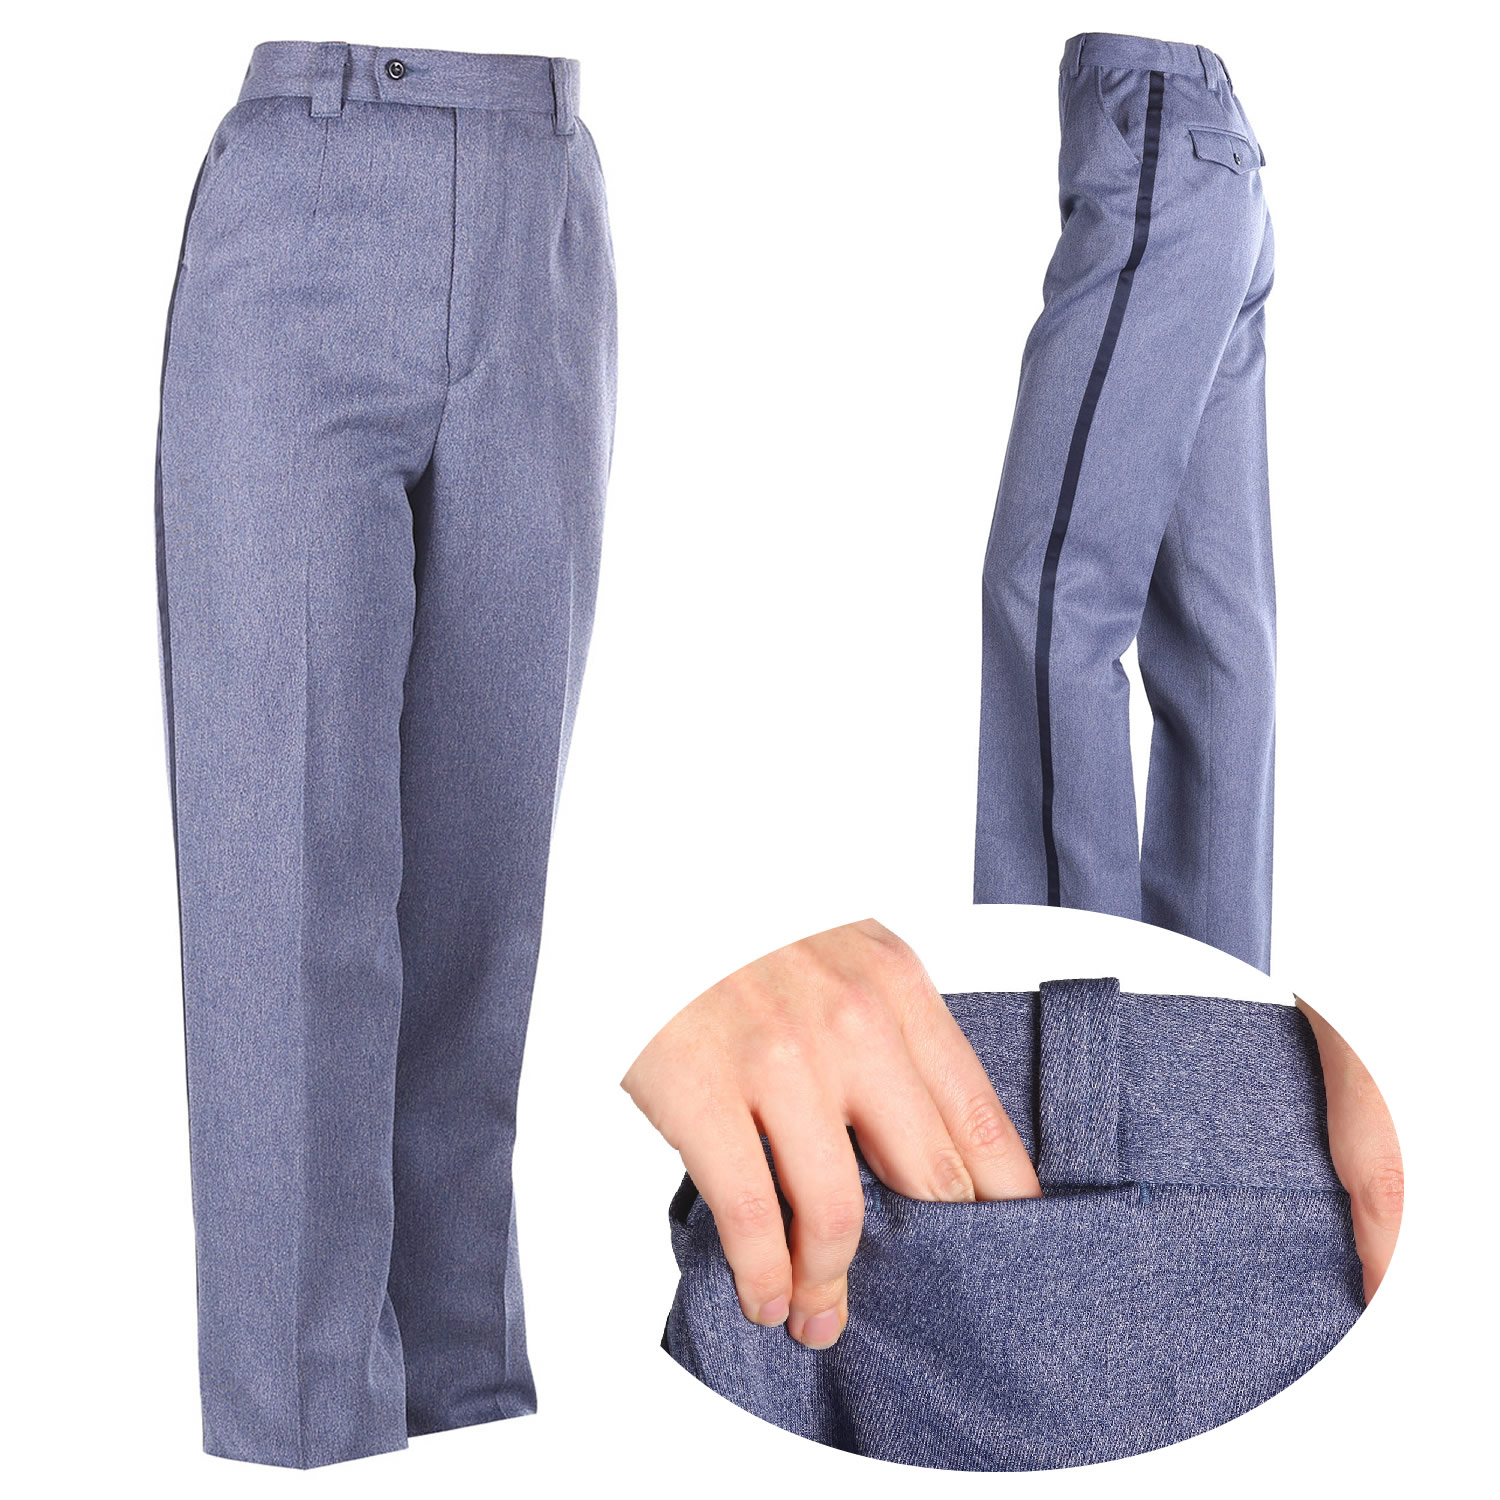 13 oz. Polyester Elastique Winter-Weight Slacks with Moistur